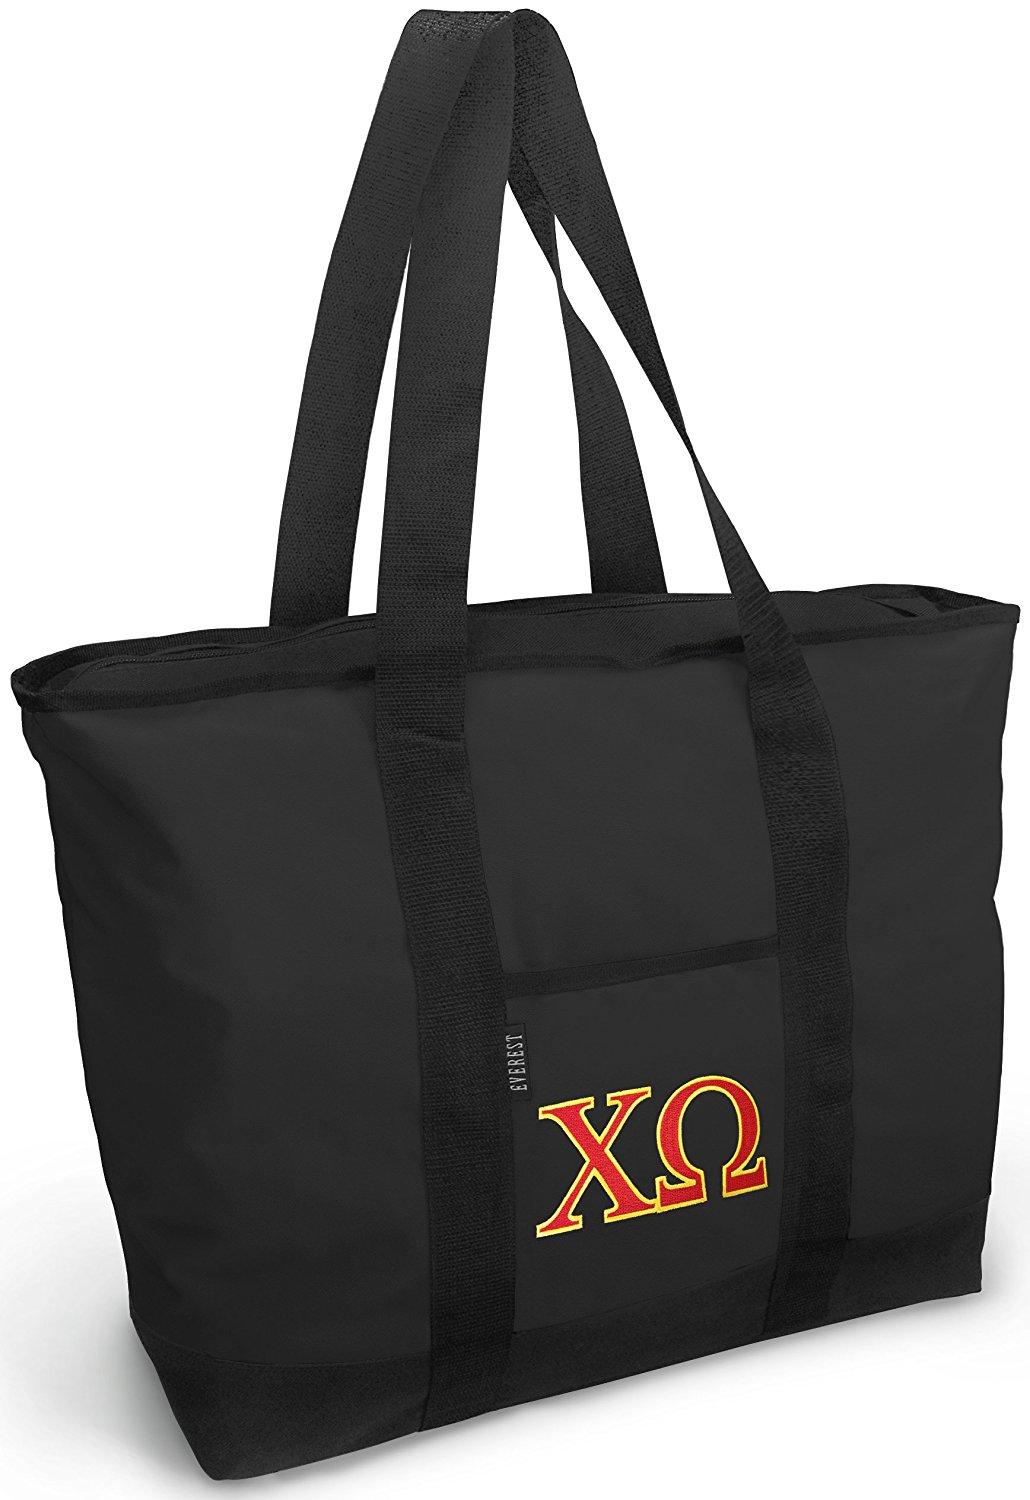 Chi Omega Tote Bag Best Chi O Totes SHOPPING TRAVEL or EVERYDAY